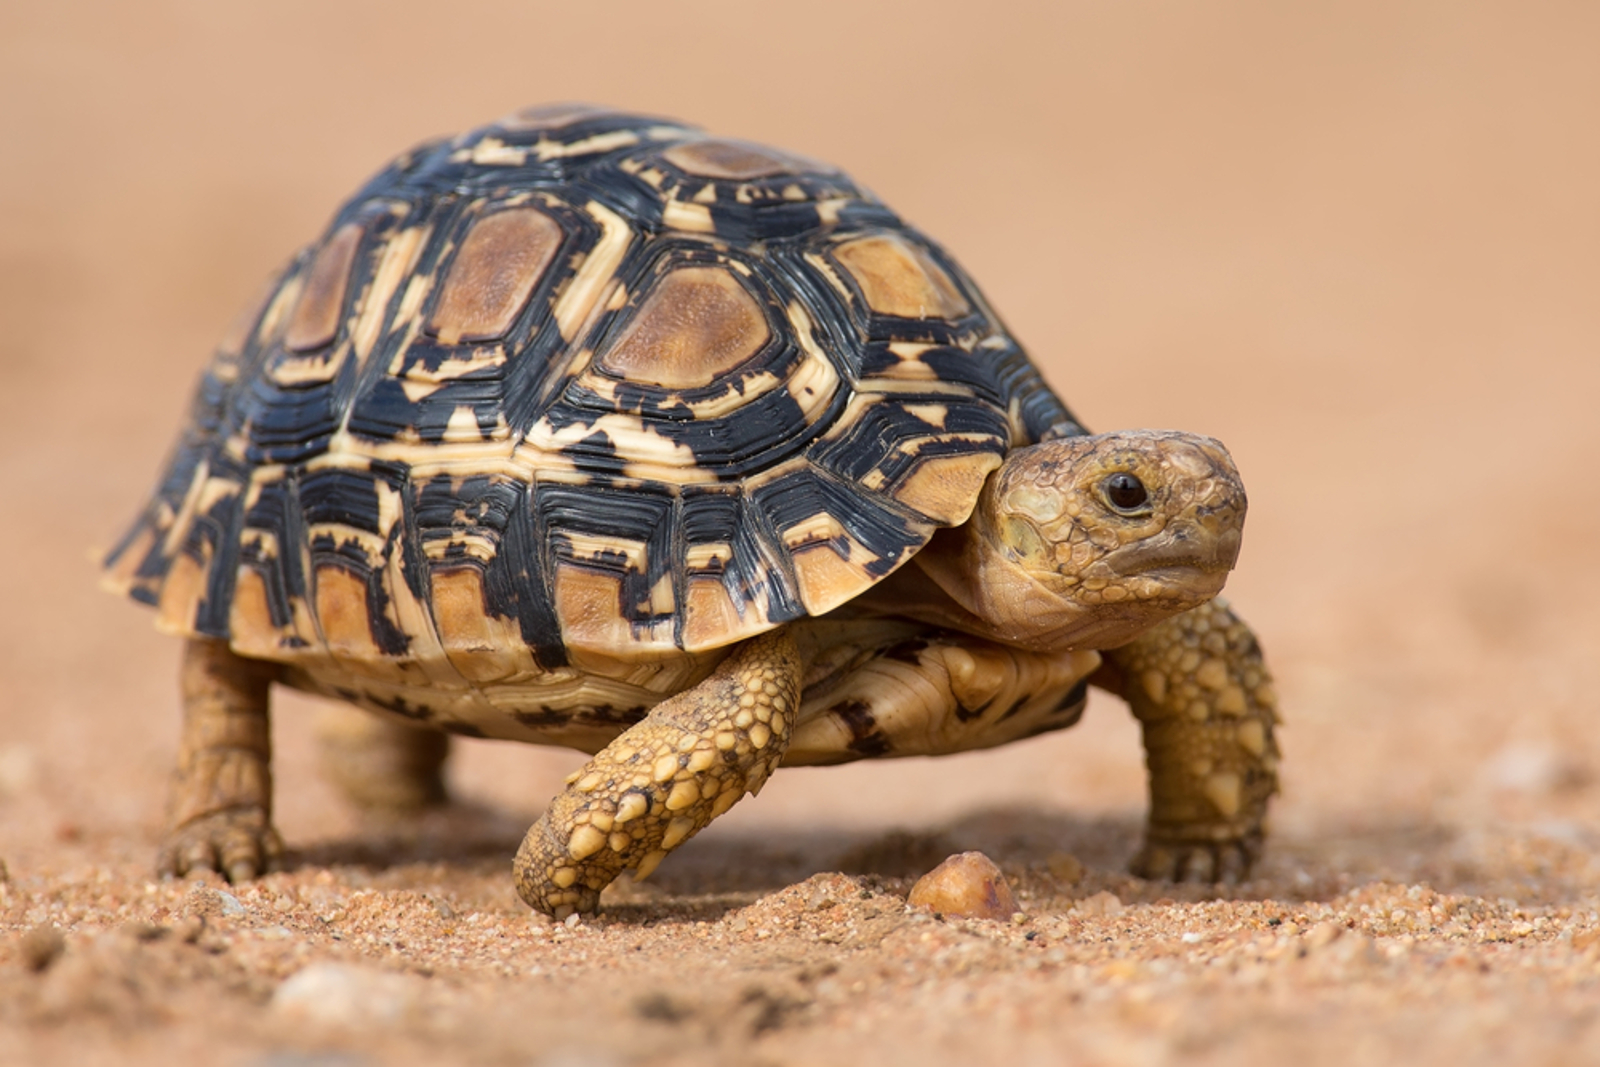 What It's Like to Save Tortoises From the Illegal Wildlife Trade in Tunisia and Europe